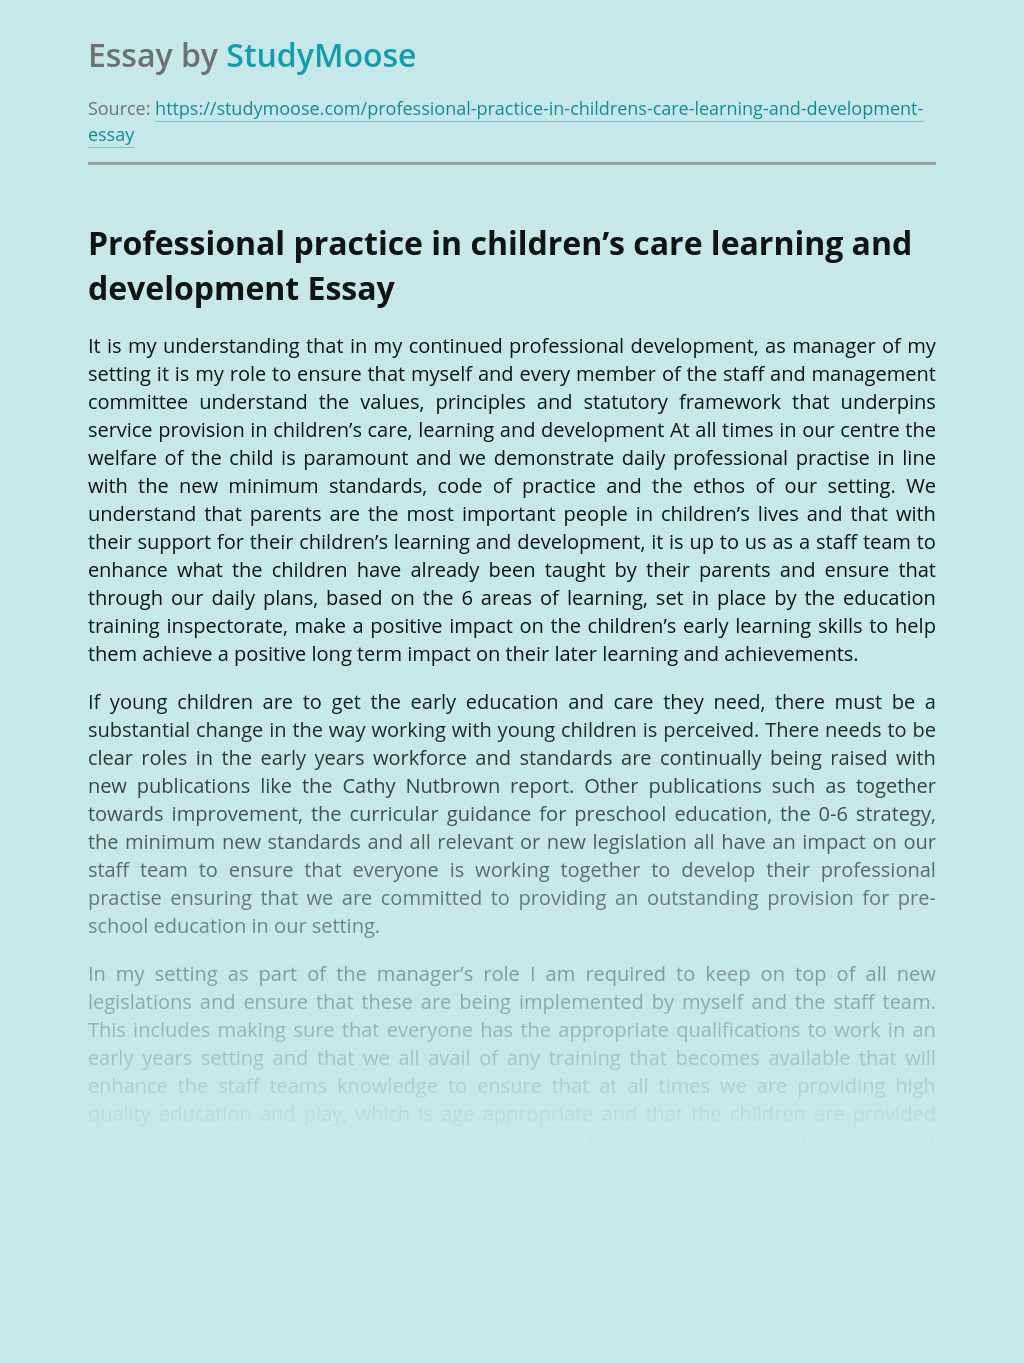 Professional practice in children's care learning and development